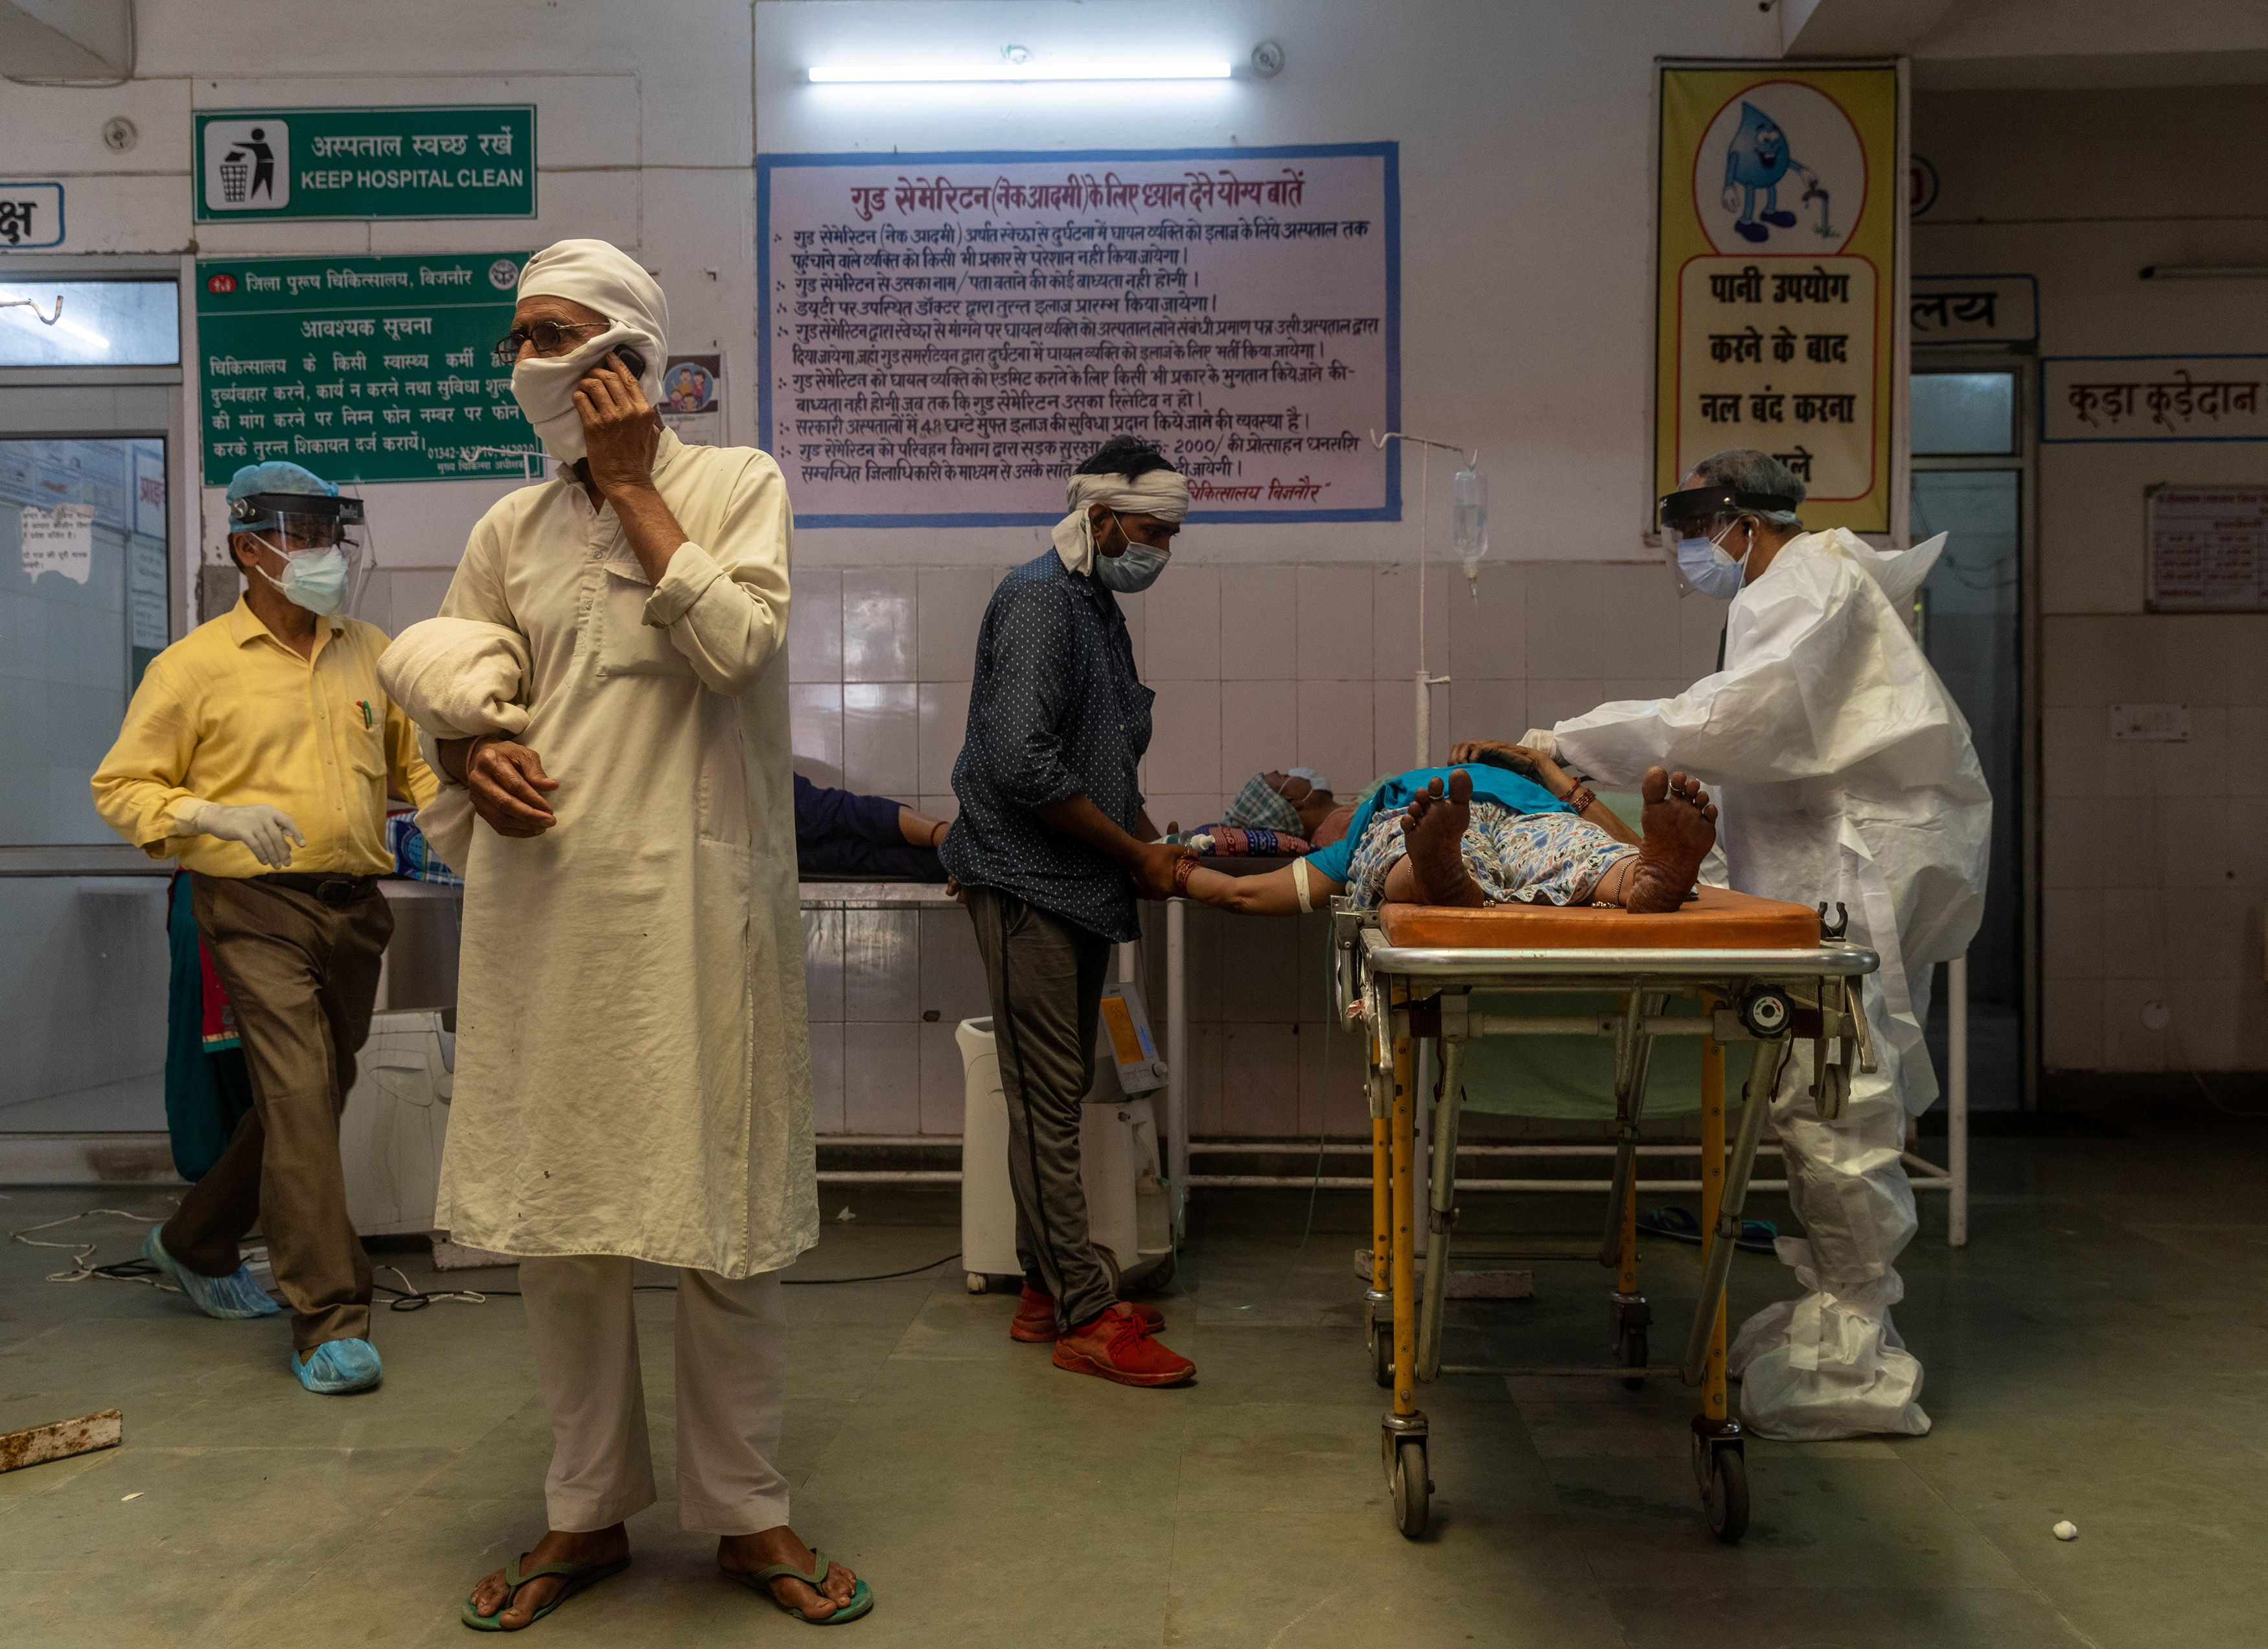 A man speaks on the phone as a doctor tries to revive his wife inside an emergency ward of a government-run hospital, amidst the coronavirus disease (COVID-19) pandemic, in Bijnor district, Uttar Pradesh, India, May 11, 2021. REUTERS/Danish Siddiqui